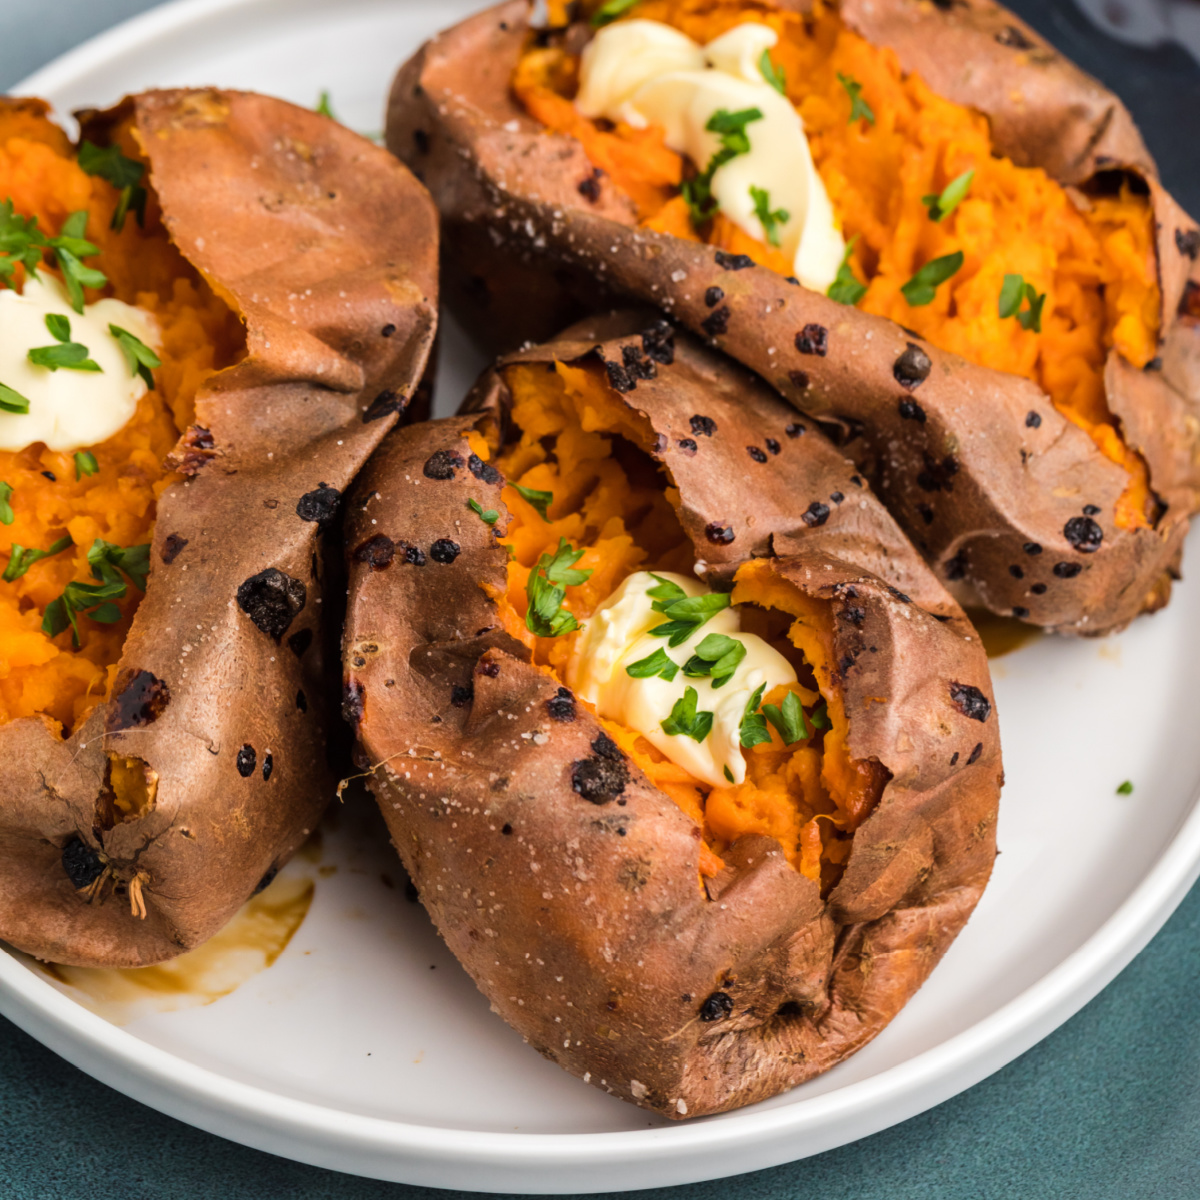 baked sweet potatoes made in the air fryer and topped with butter and fresh parsley.